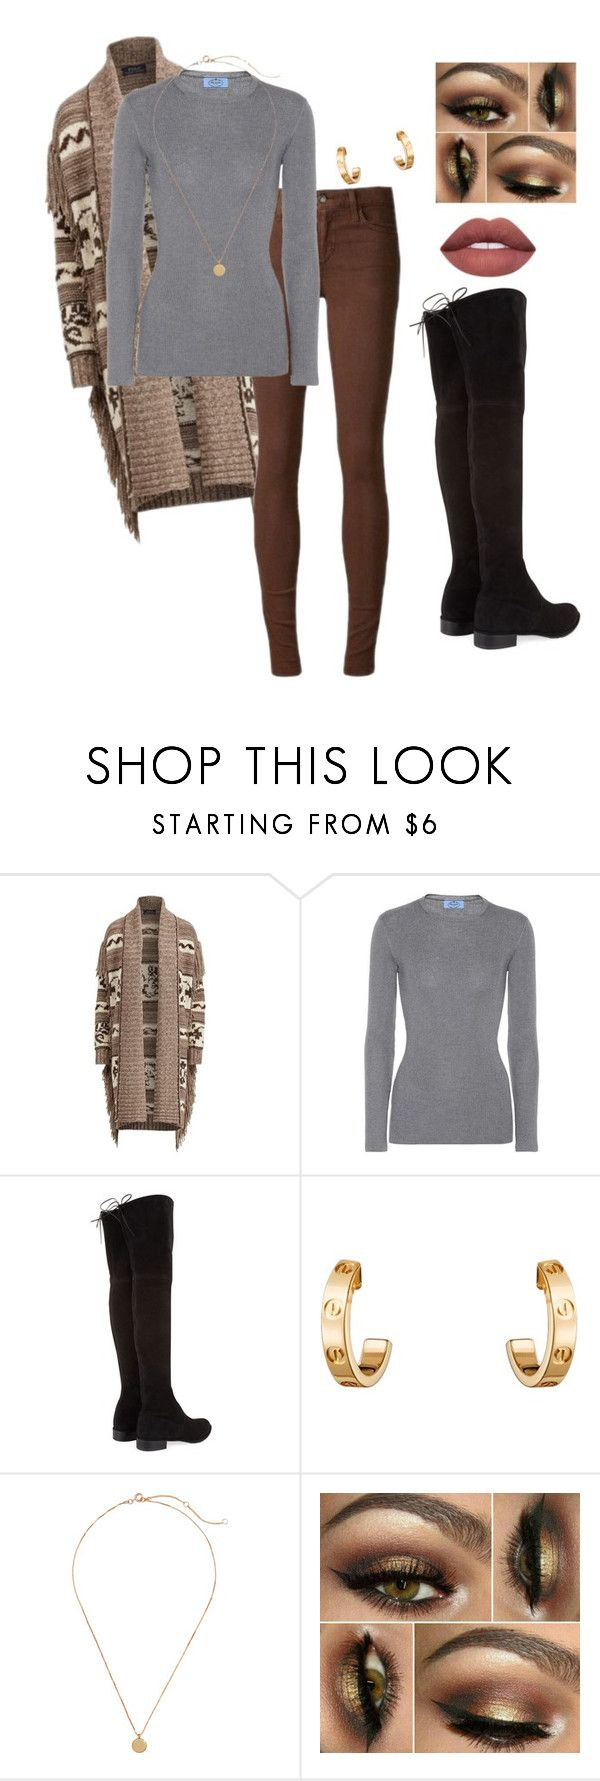 """""""OOTD Tomorrow"""" by vireheart ❤ liked on Polyvore featuring Polo Ralph Lauren, Joe's Jeans, Prada, Stuart Weitzman and Cartier"""